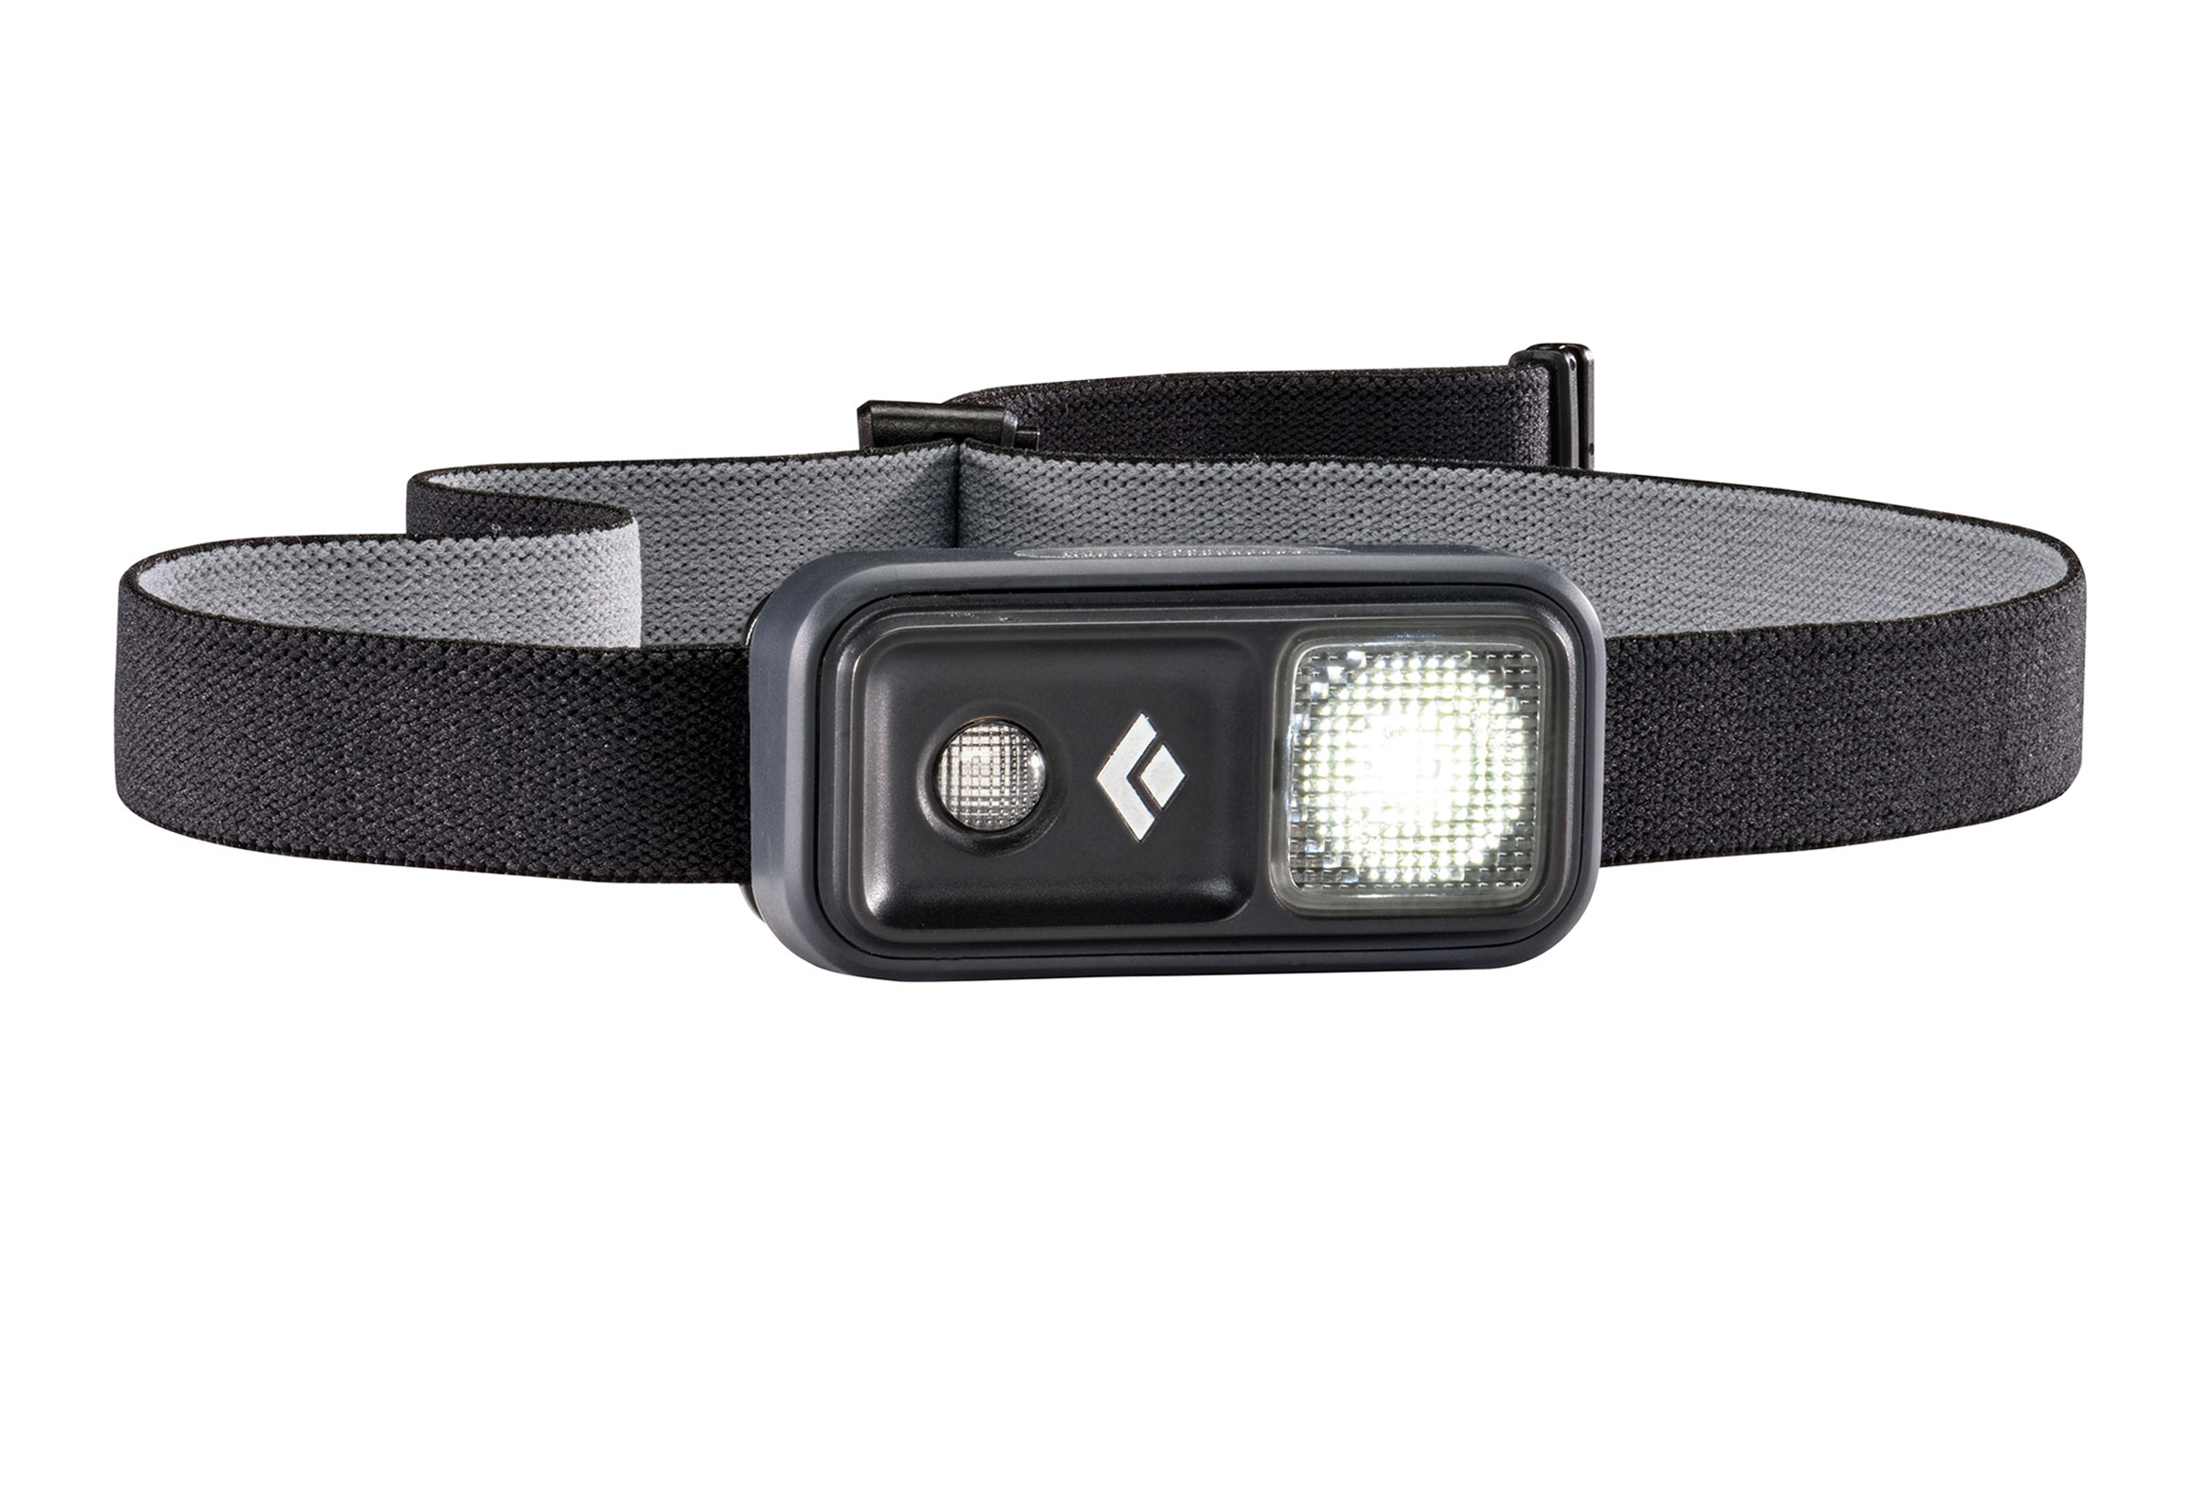 BD ion headlamp